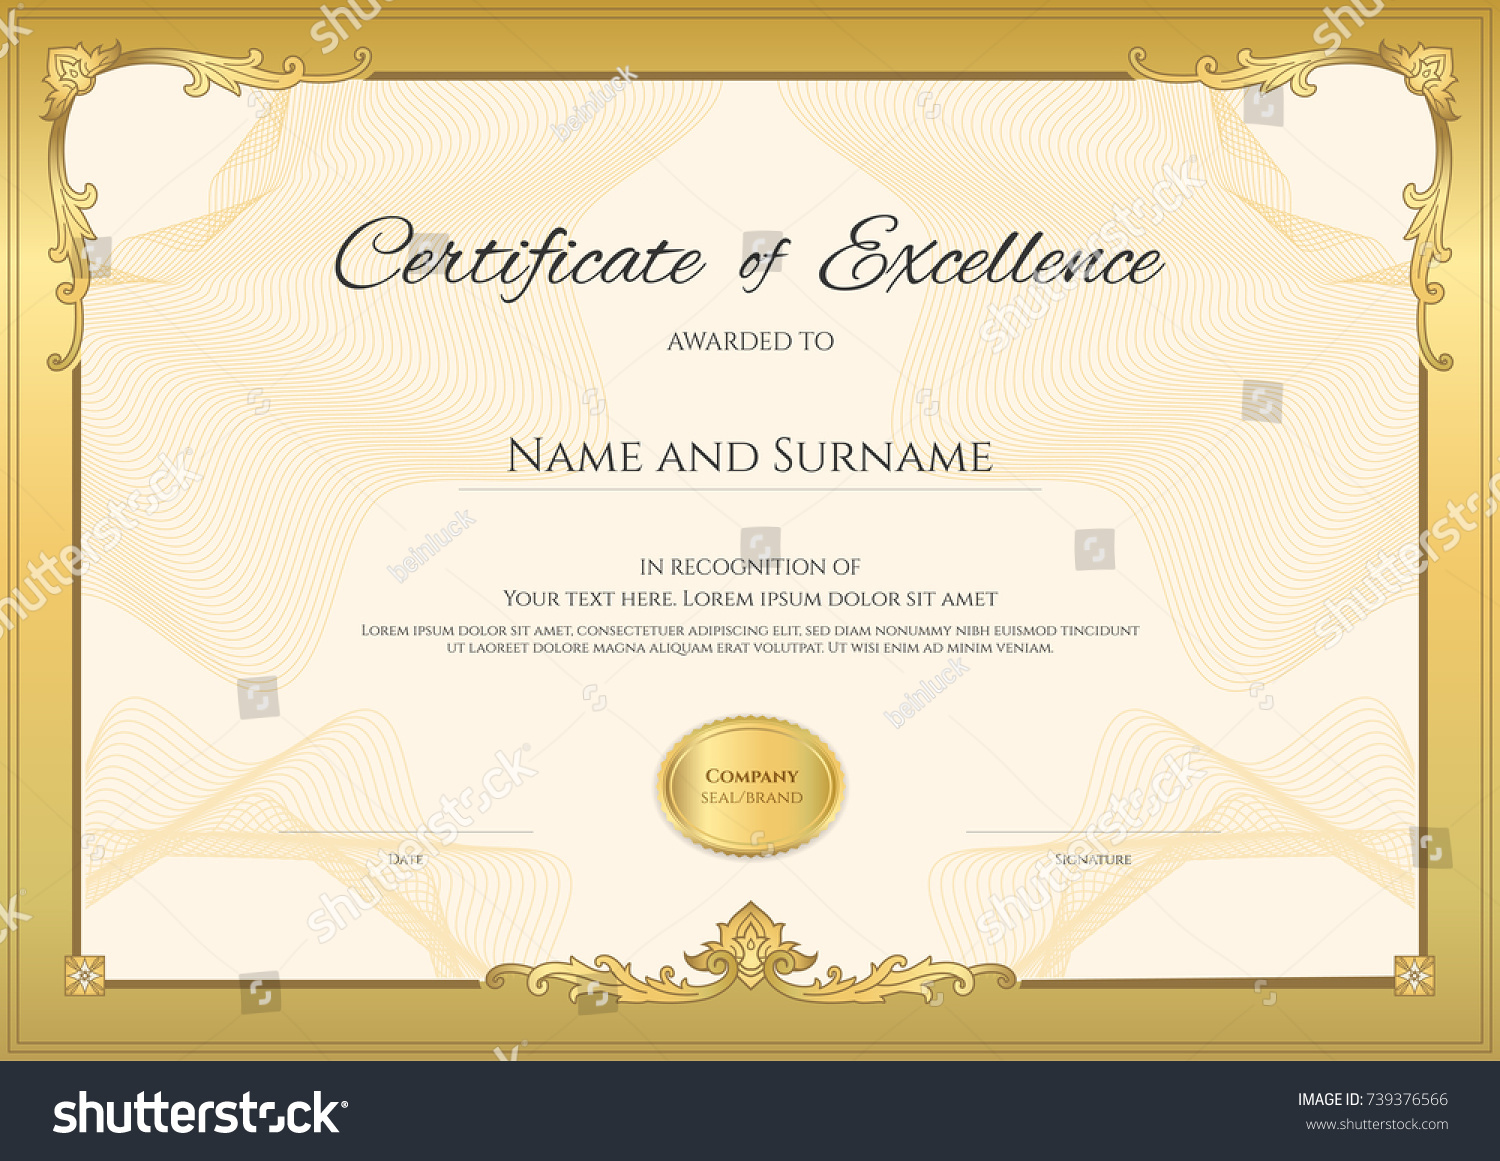 Fresh appreciation certificate format in free printable sign up luxury appreciation certificate samples excuse agreement format stock vector luxury certificate template with elegant border frame yadclub